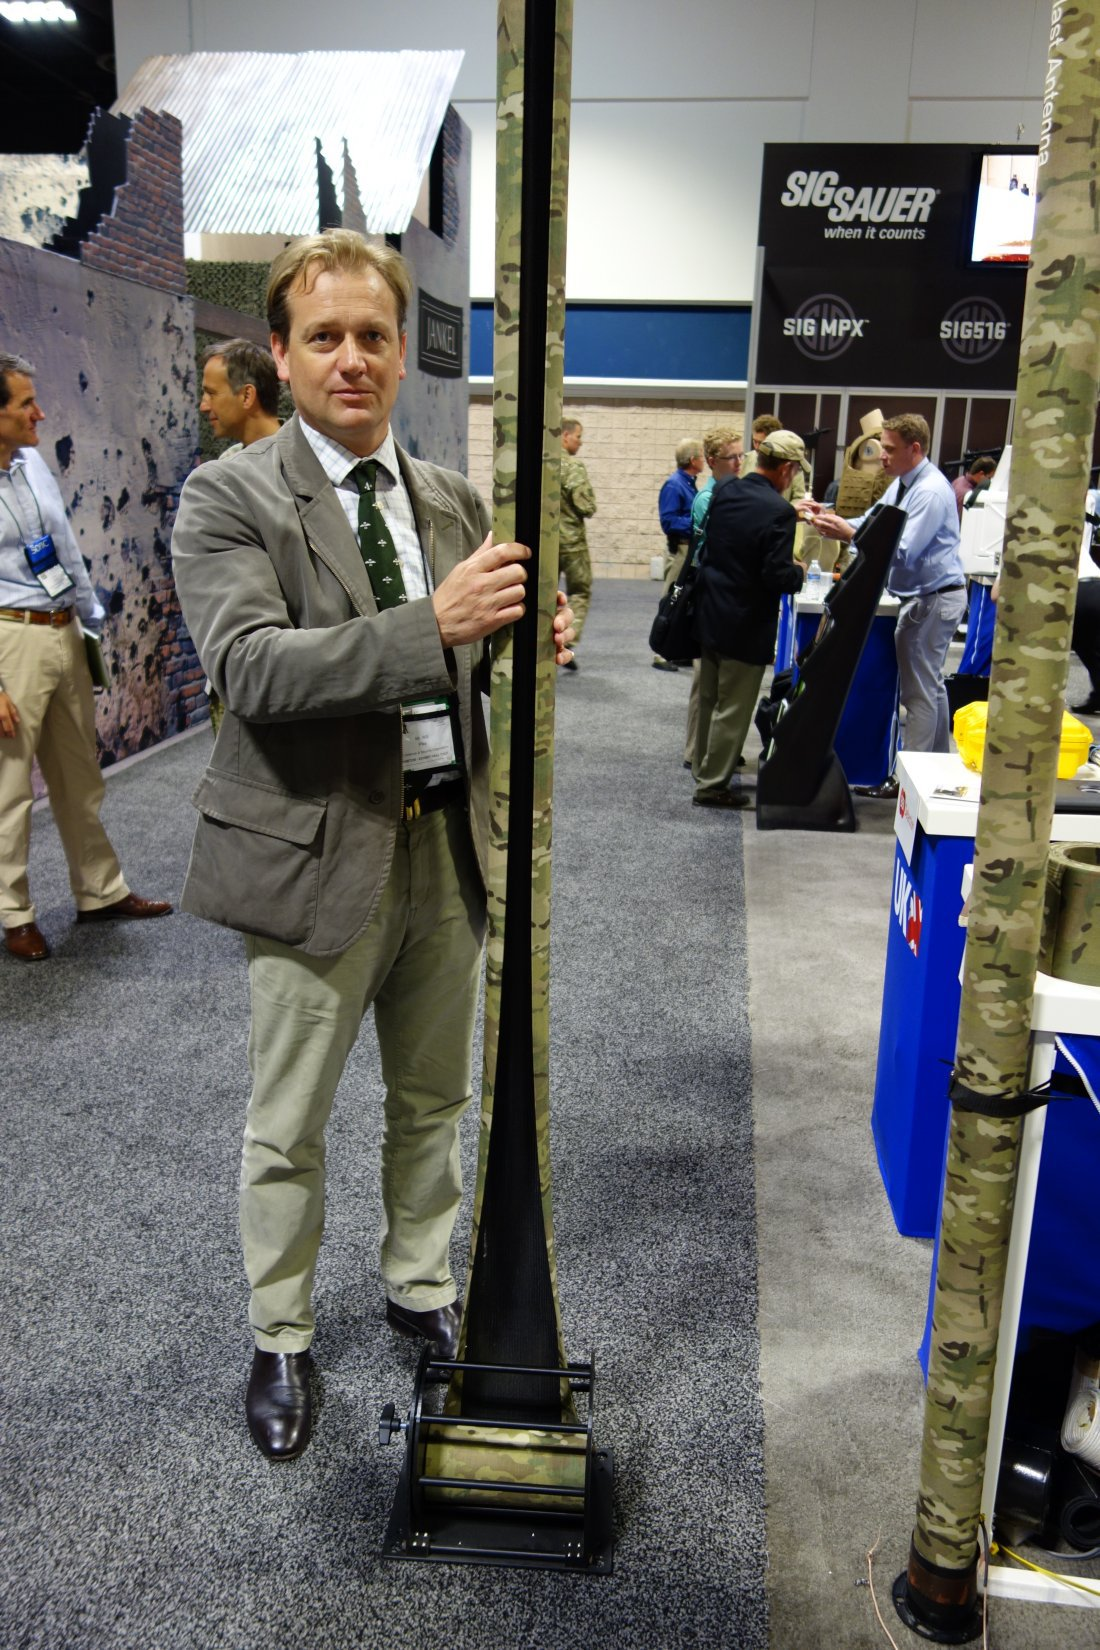 Rolatube Technology Extending Technology Lightweight Tubular Tactical Antenna and Lightweight Tubular Tactical Ladder Combat Ladder Will Pike SOFIC 2013 David Crane DefenseReview.com DR 8 Rolatube Technology Extendable/Collapsible Lightweight Tubular Tactical Ladder and Tactical Antenna Mast for Military Special Operations Forces (SOF) Combat Missions and Maritime Ops (Video!)